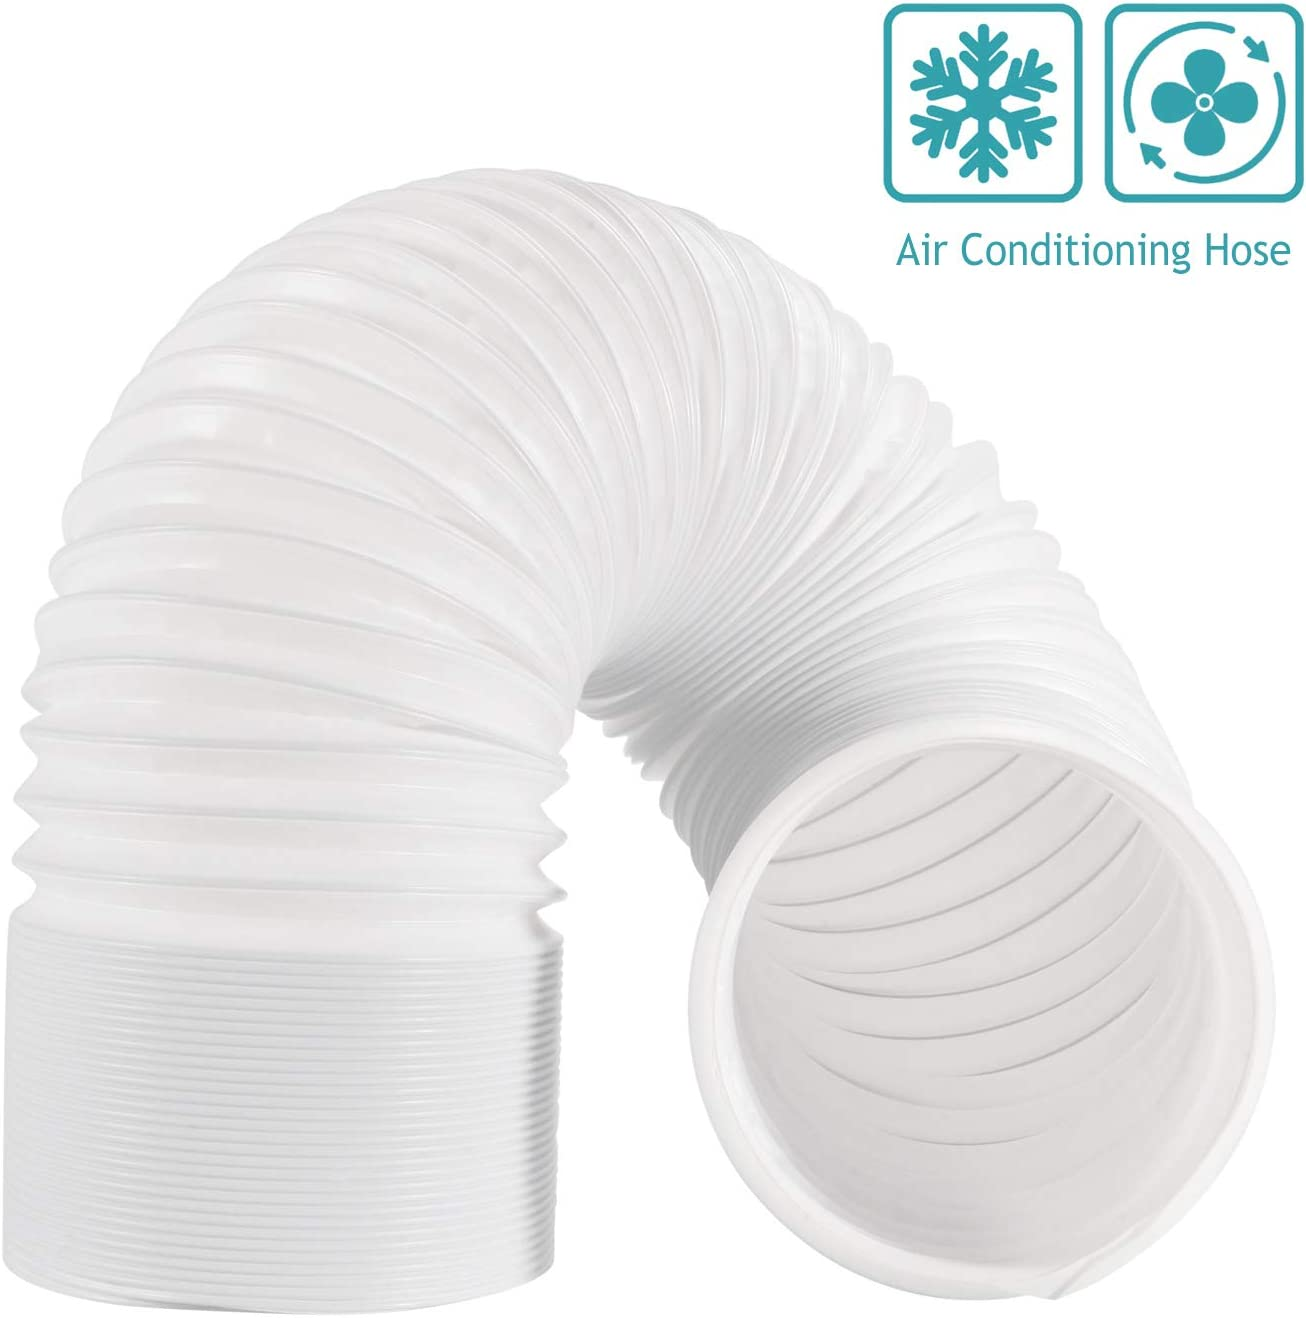 HG POWER Air Conditioner Hose, 79 Inch Long Intake/Exhaust Hose Flexible Ducting Counter Clockwise Room Air Conditioner AC Vent Replacement Tube Air Hose for Portable Air Conditioner (4 INCH-2M)